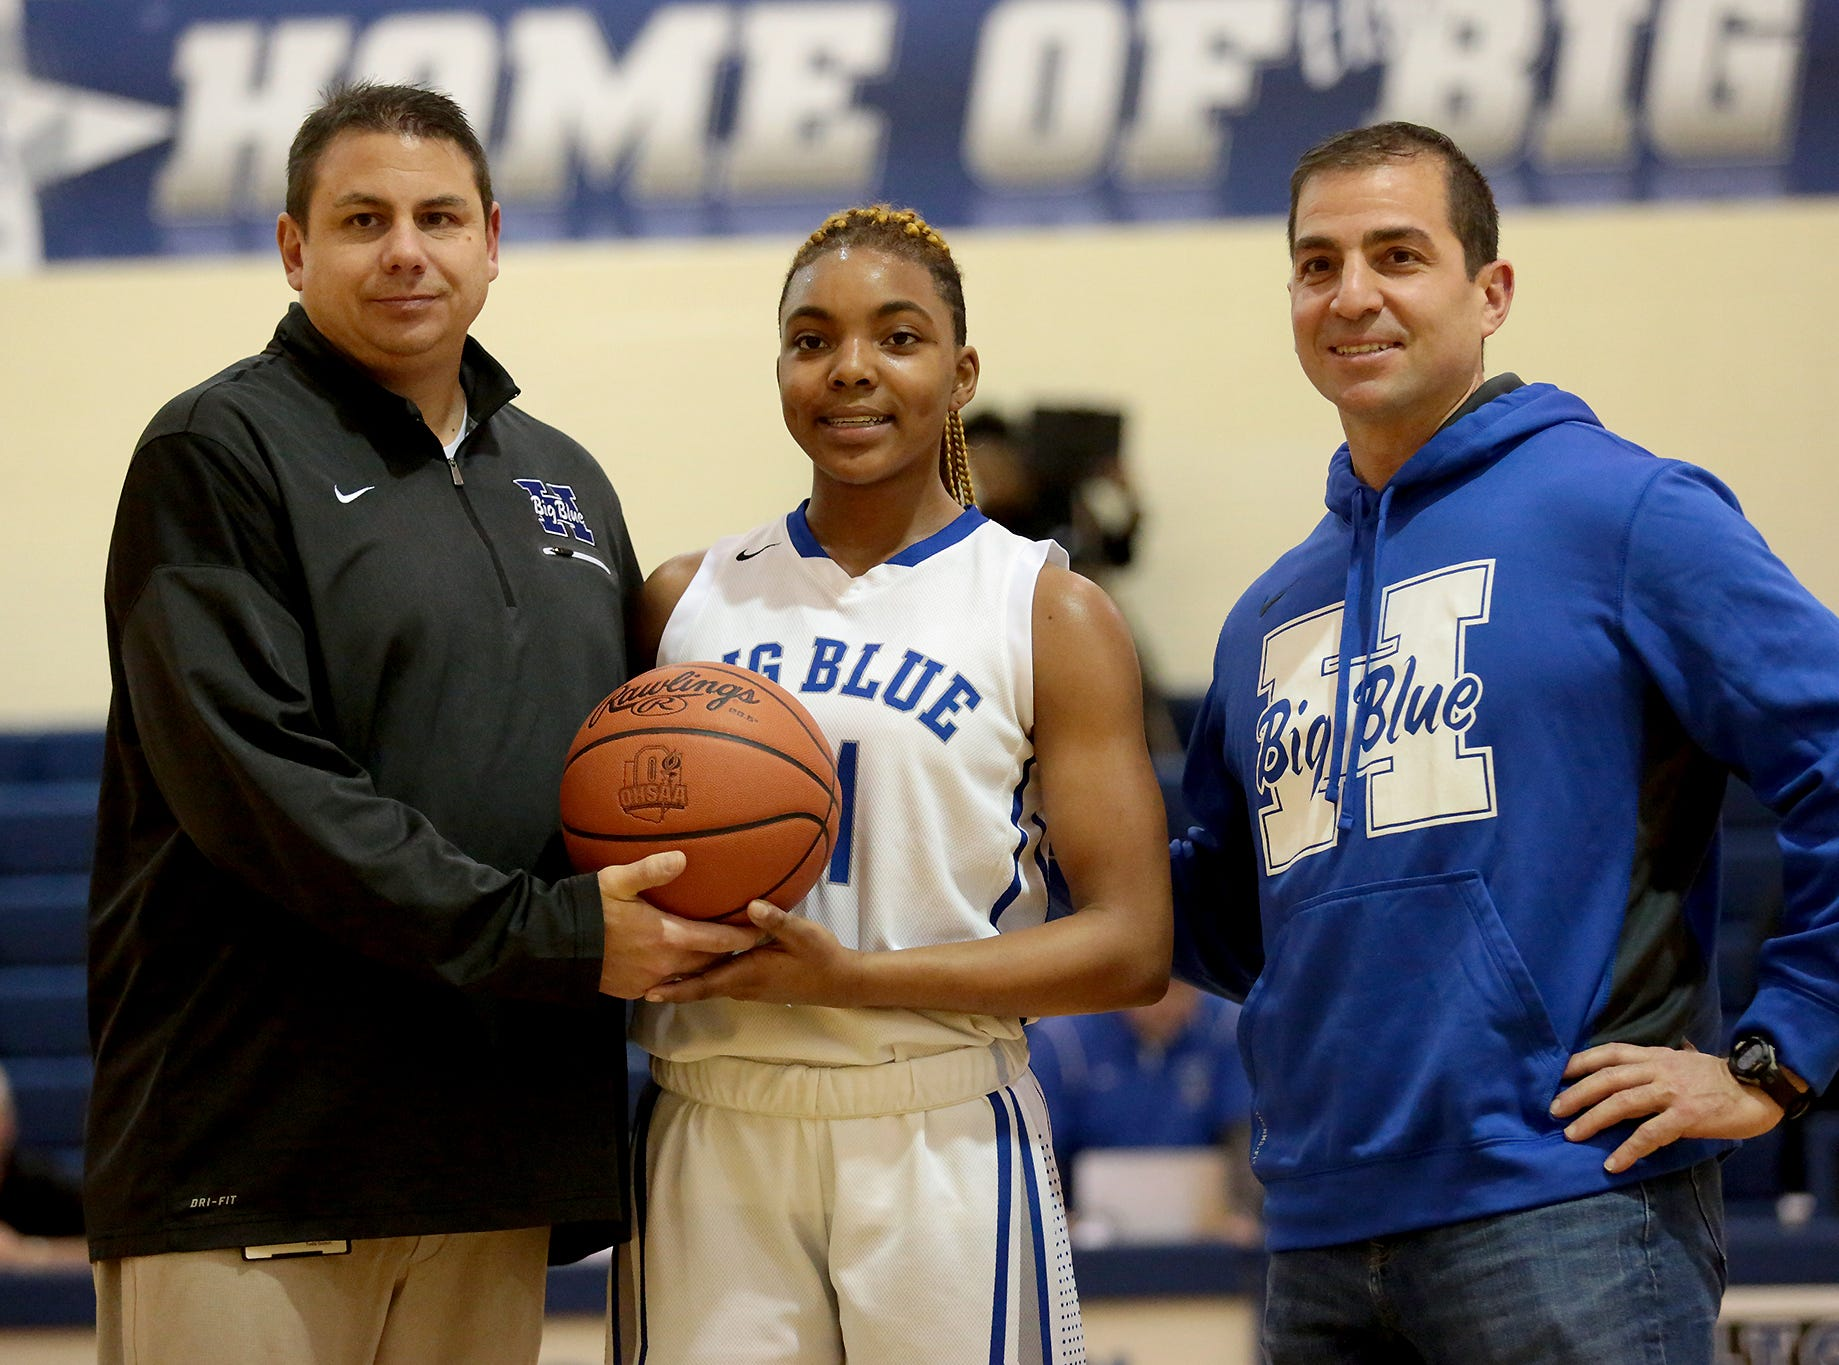 Hamilton City Schools district athletic director Todd Grimm and Hamilton High principal John Wilhelm honor Big Blue senior CiCi Riggins after she became Hamilton High's leading scorer for girls basketball during their game against Northwest at the Hamilton freshman school Thursday, Dec. 27, 2018.